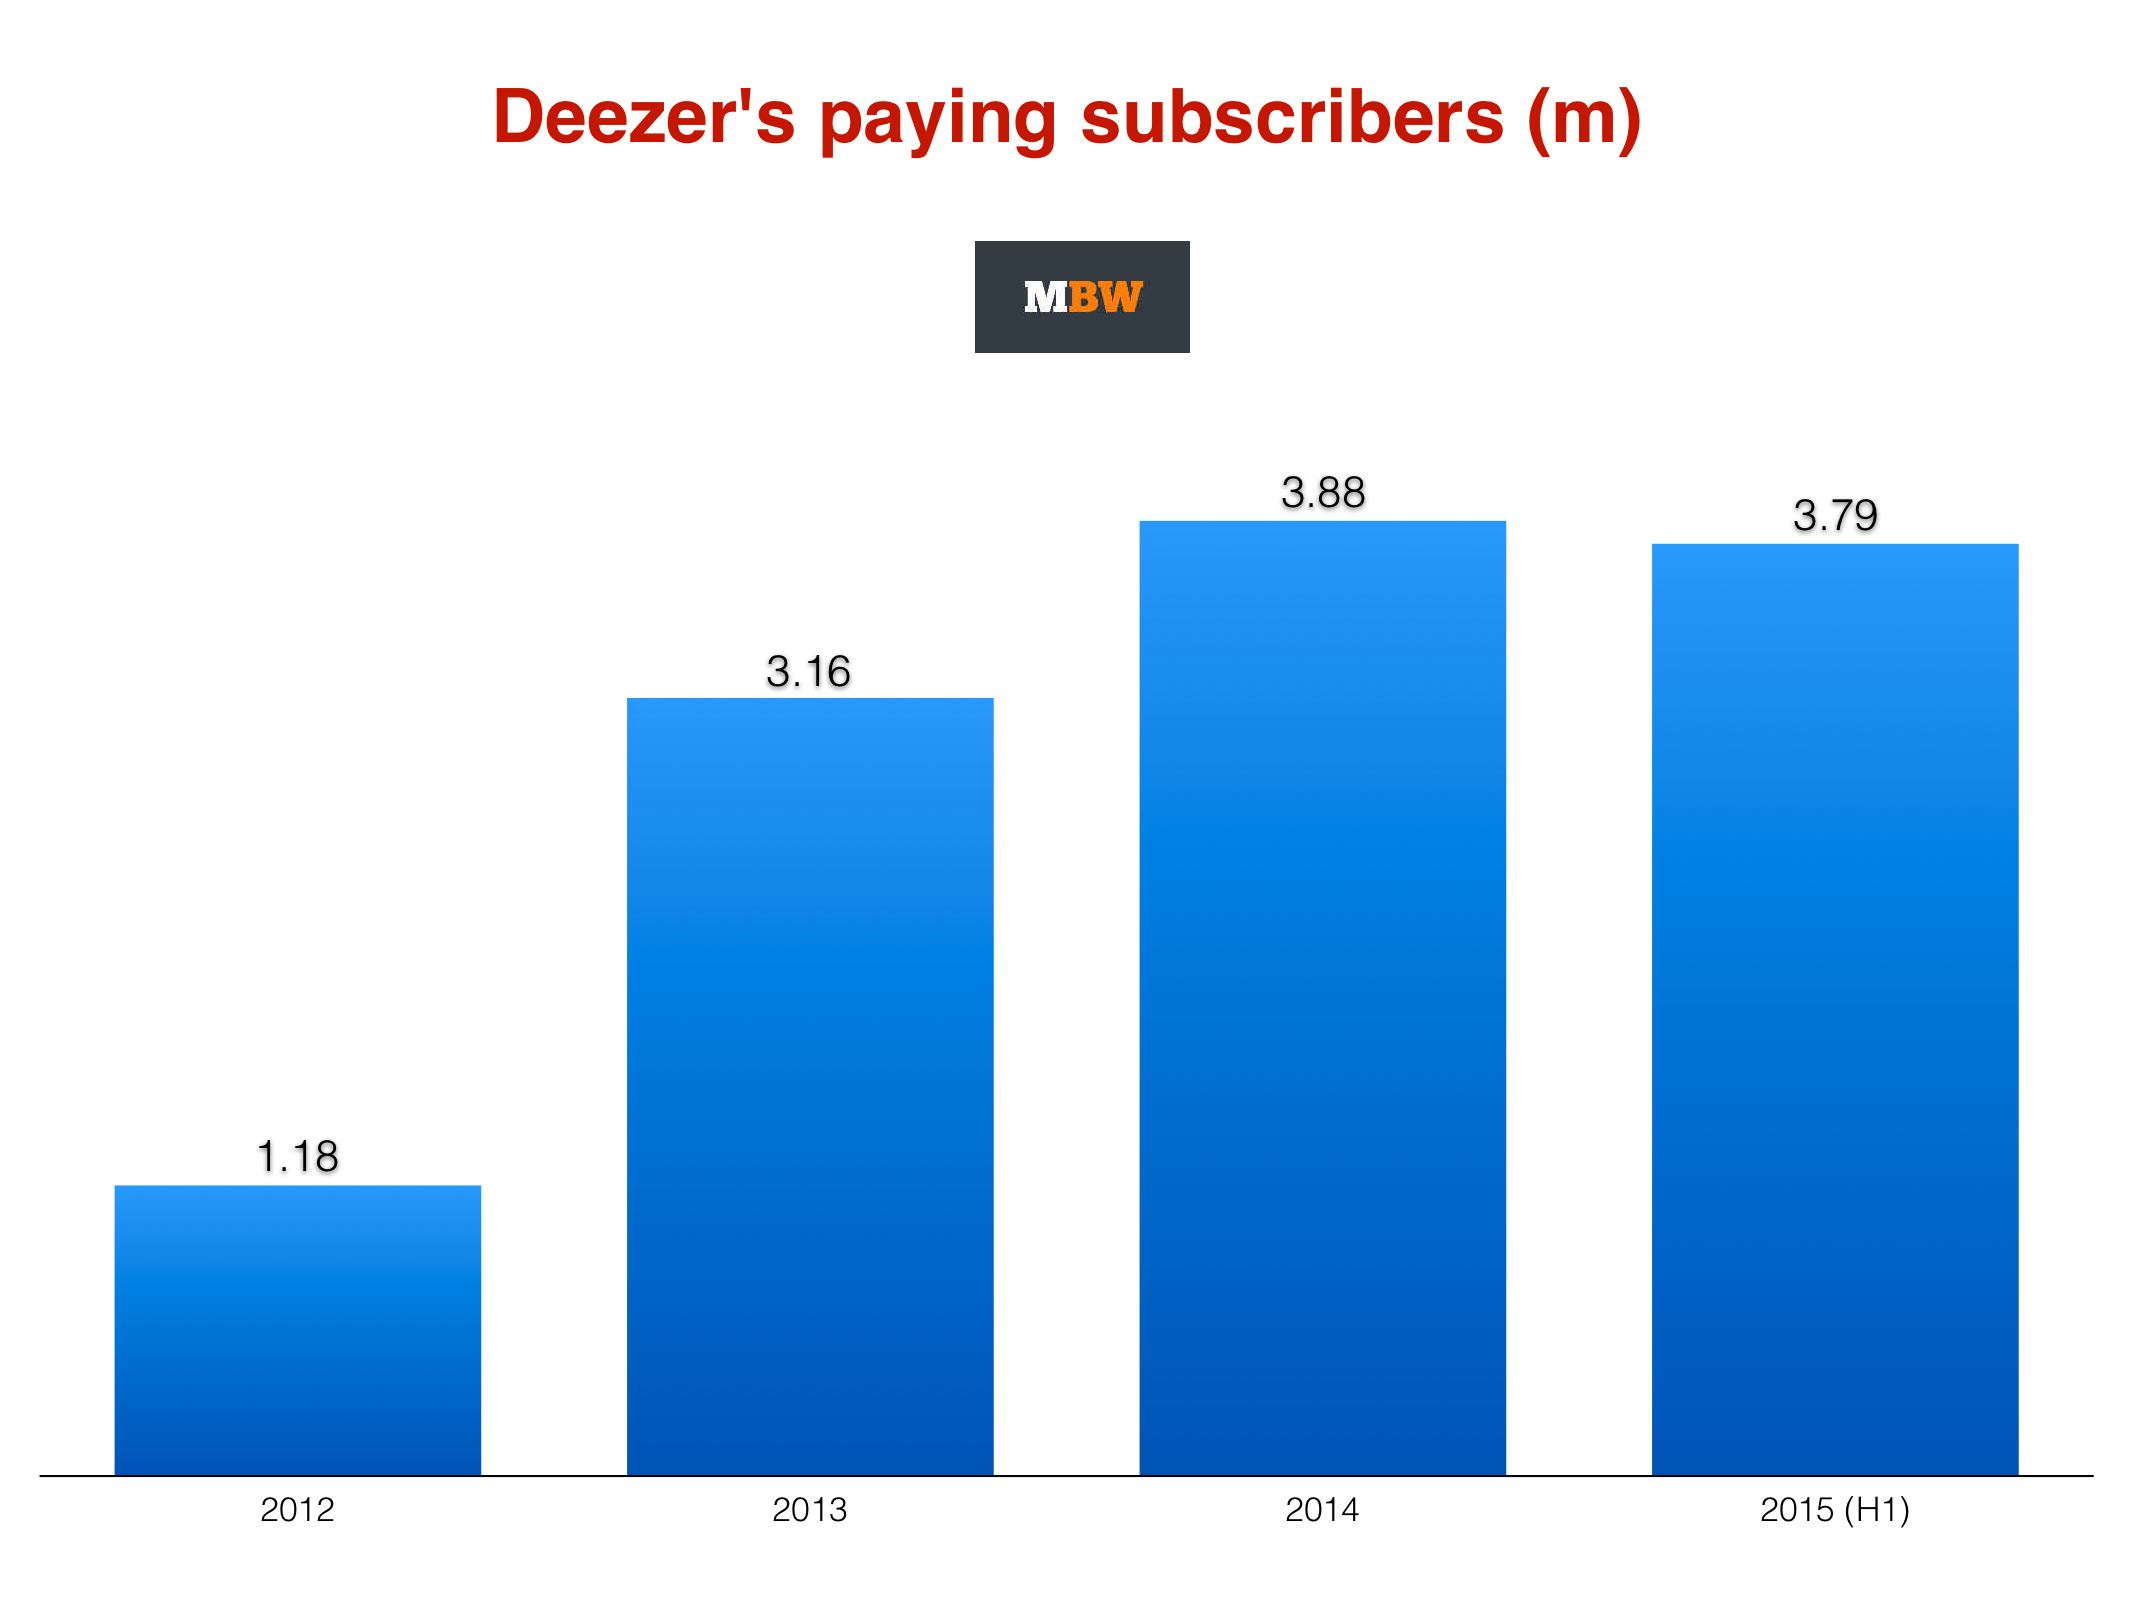 Deezer scraps IPO that could have raised $400m - here's 5